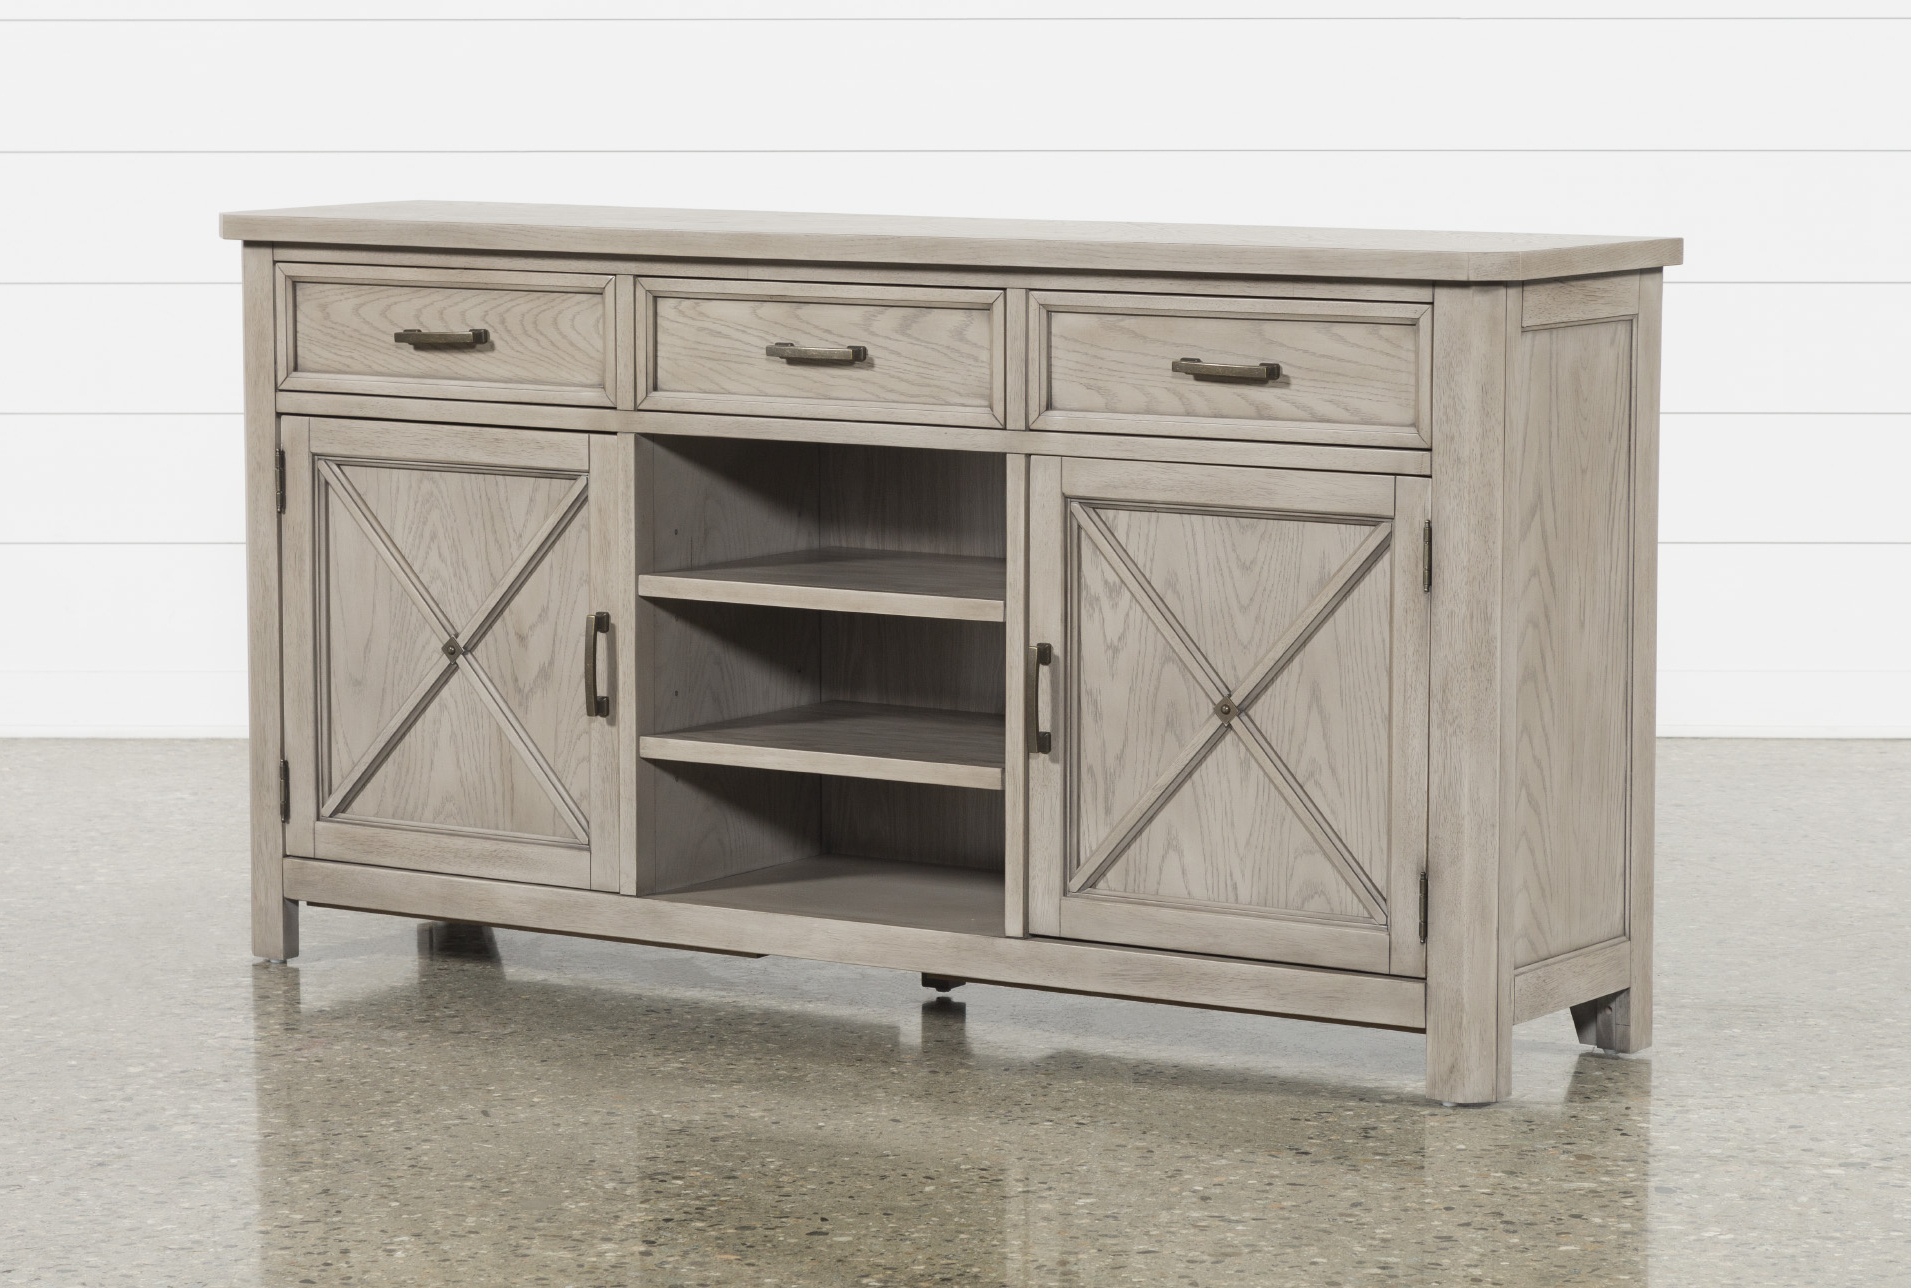 Camilla Buffet In 2019 | Products | Buffet, Sideboard Buffet With Regard To Pineville Dining Sideboards (View 6 of 20)